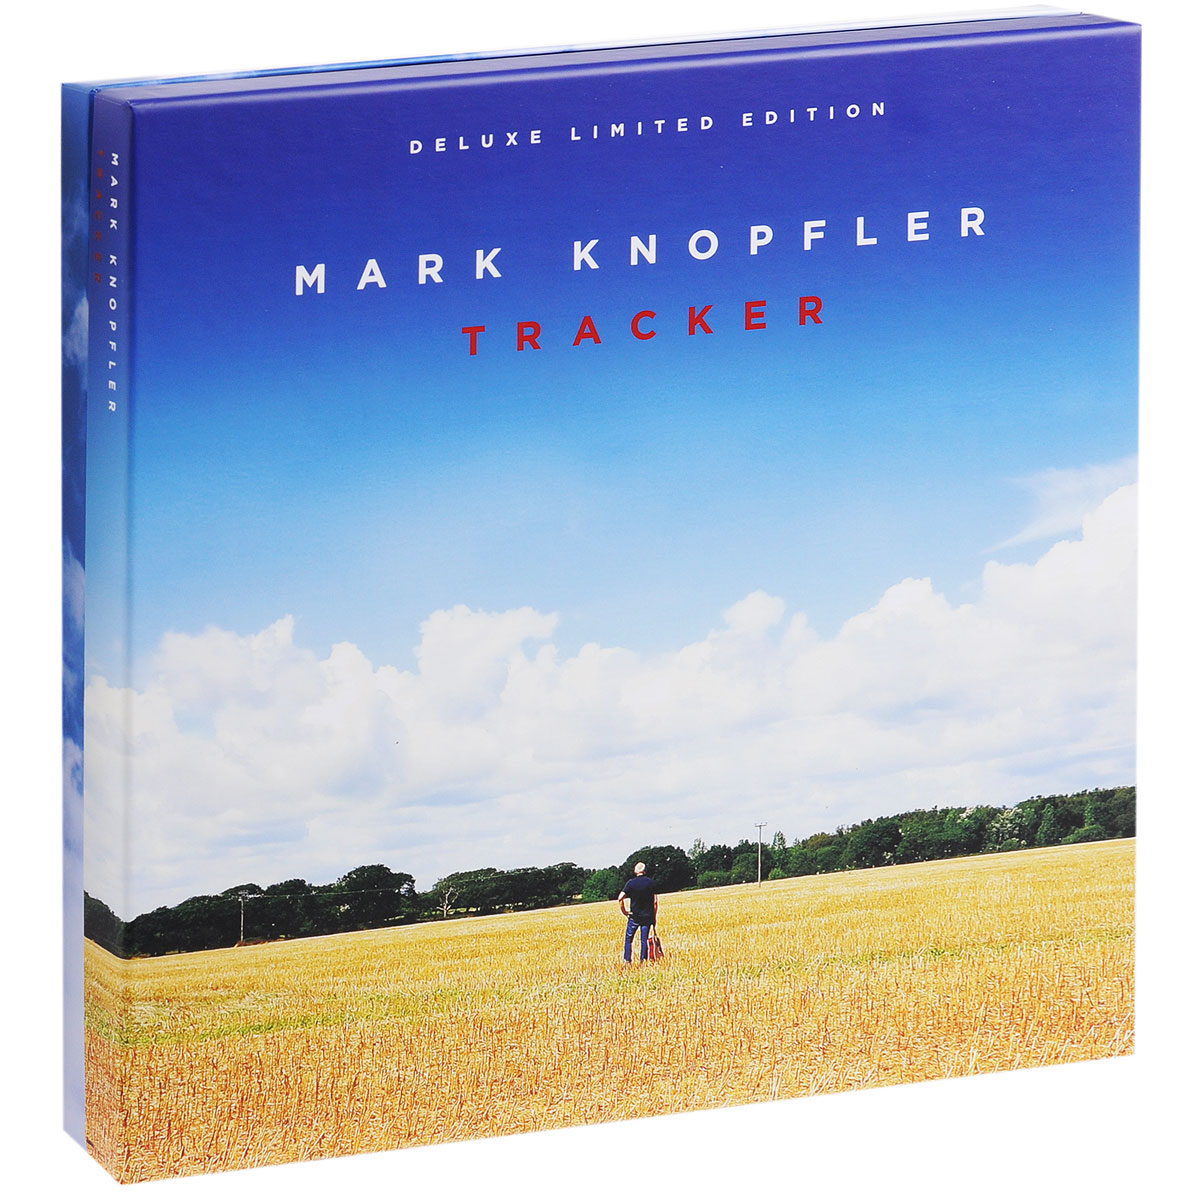 Марк Нопфлер Mark Knopfler. Tracker. Deluxe Limited Edition (2 CD + DVD + 2 LP) animal collective animal collective centipede hz limited edition deluxe 2 lp dvd